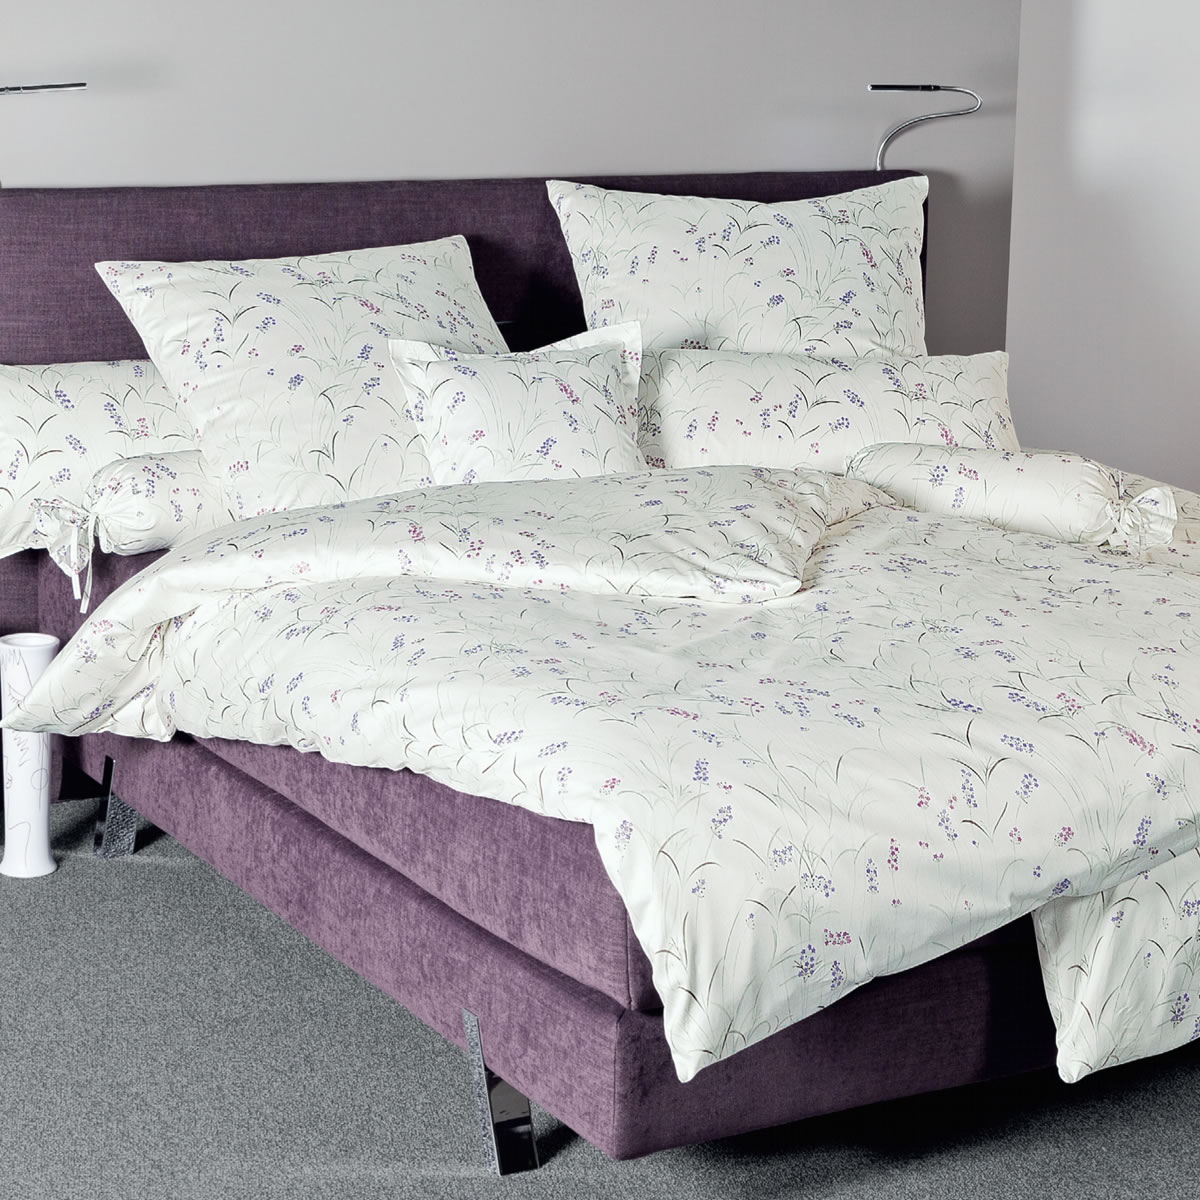 janine interlock fein jersey bettw sche carmen 53020 05 lavendel mauve. Black Bedroom Furniture Sets. Home Design Ideas